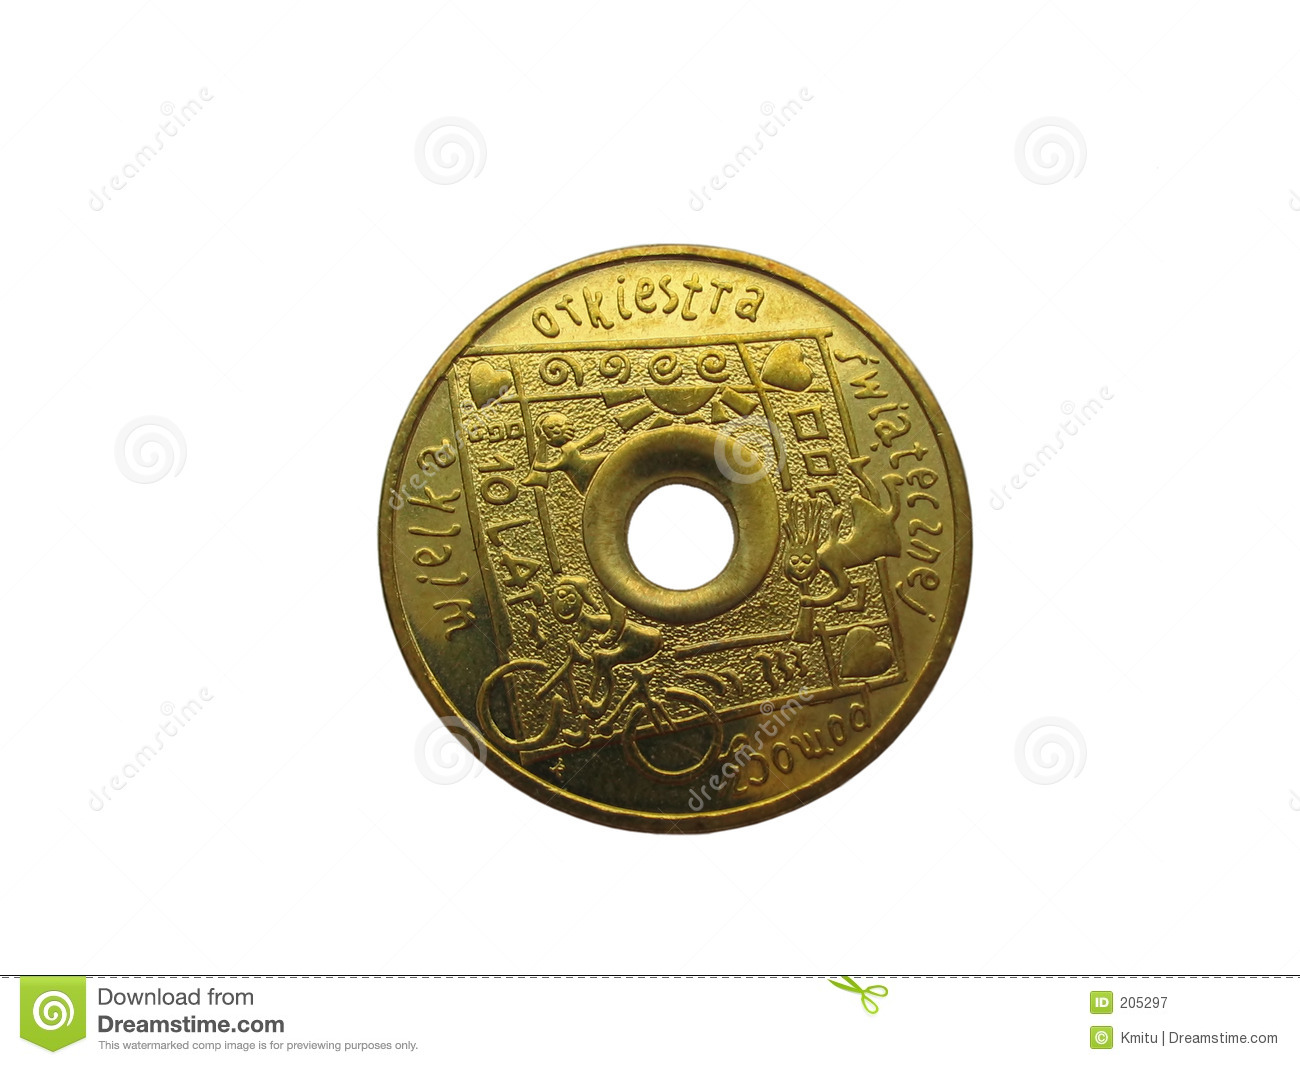 Unique Coin Unique Coin With Hole Inside Isolated Stock Image